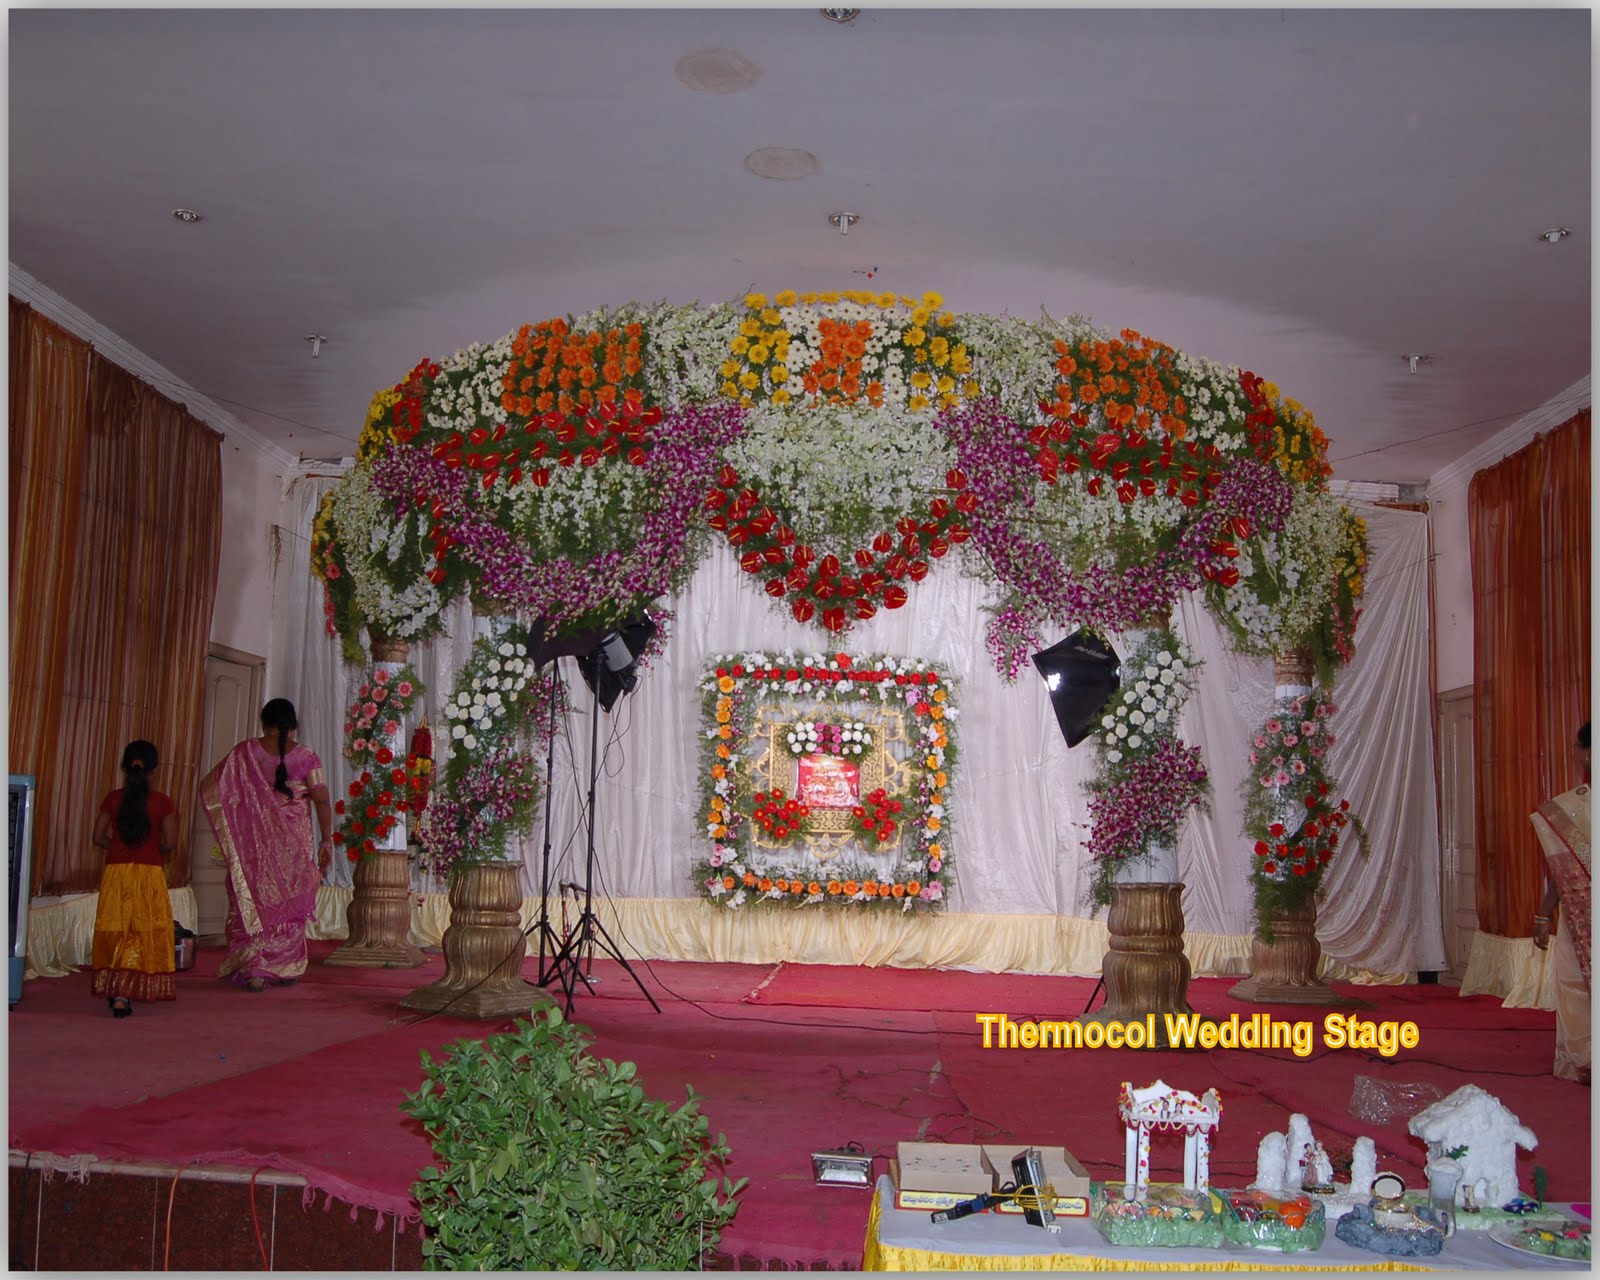 Swapnasridhar Wedding Stage With Thermocol Sheet